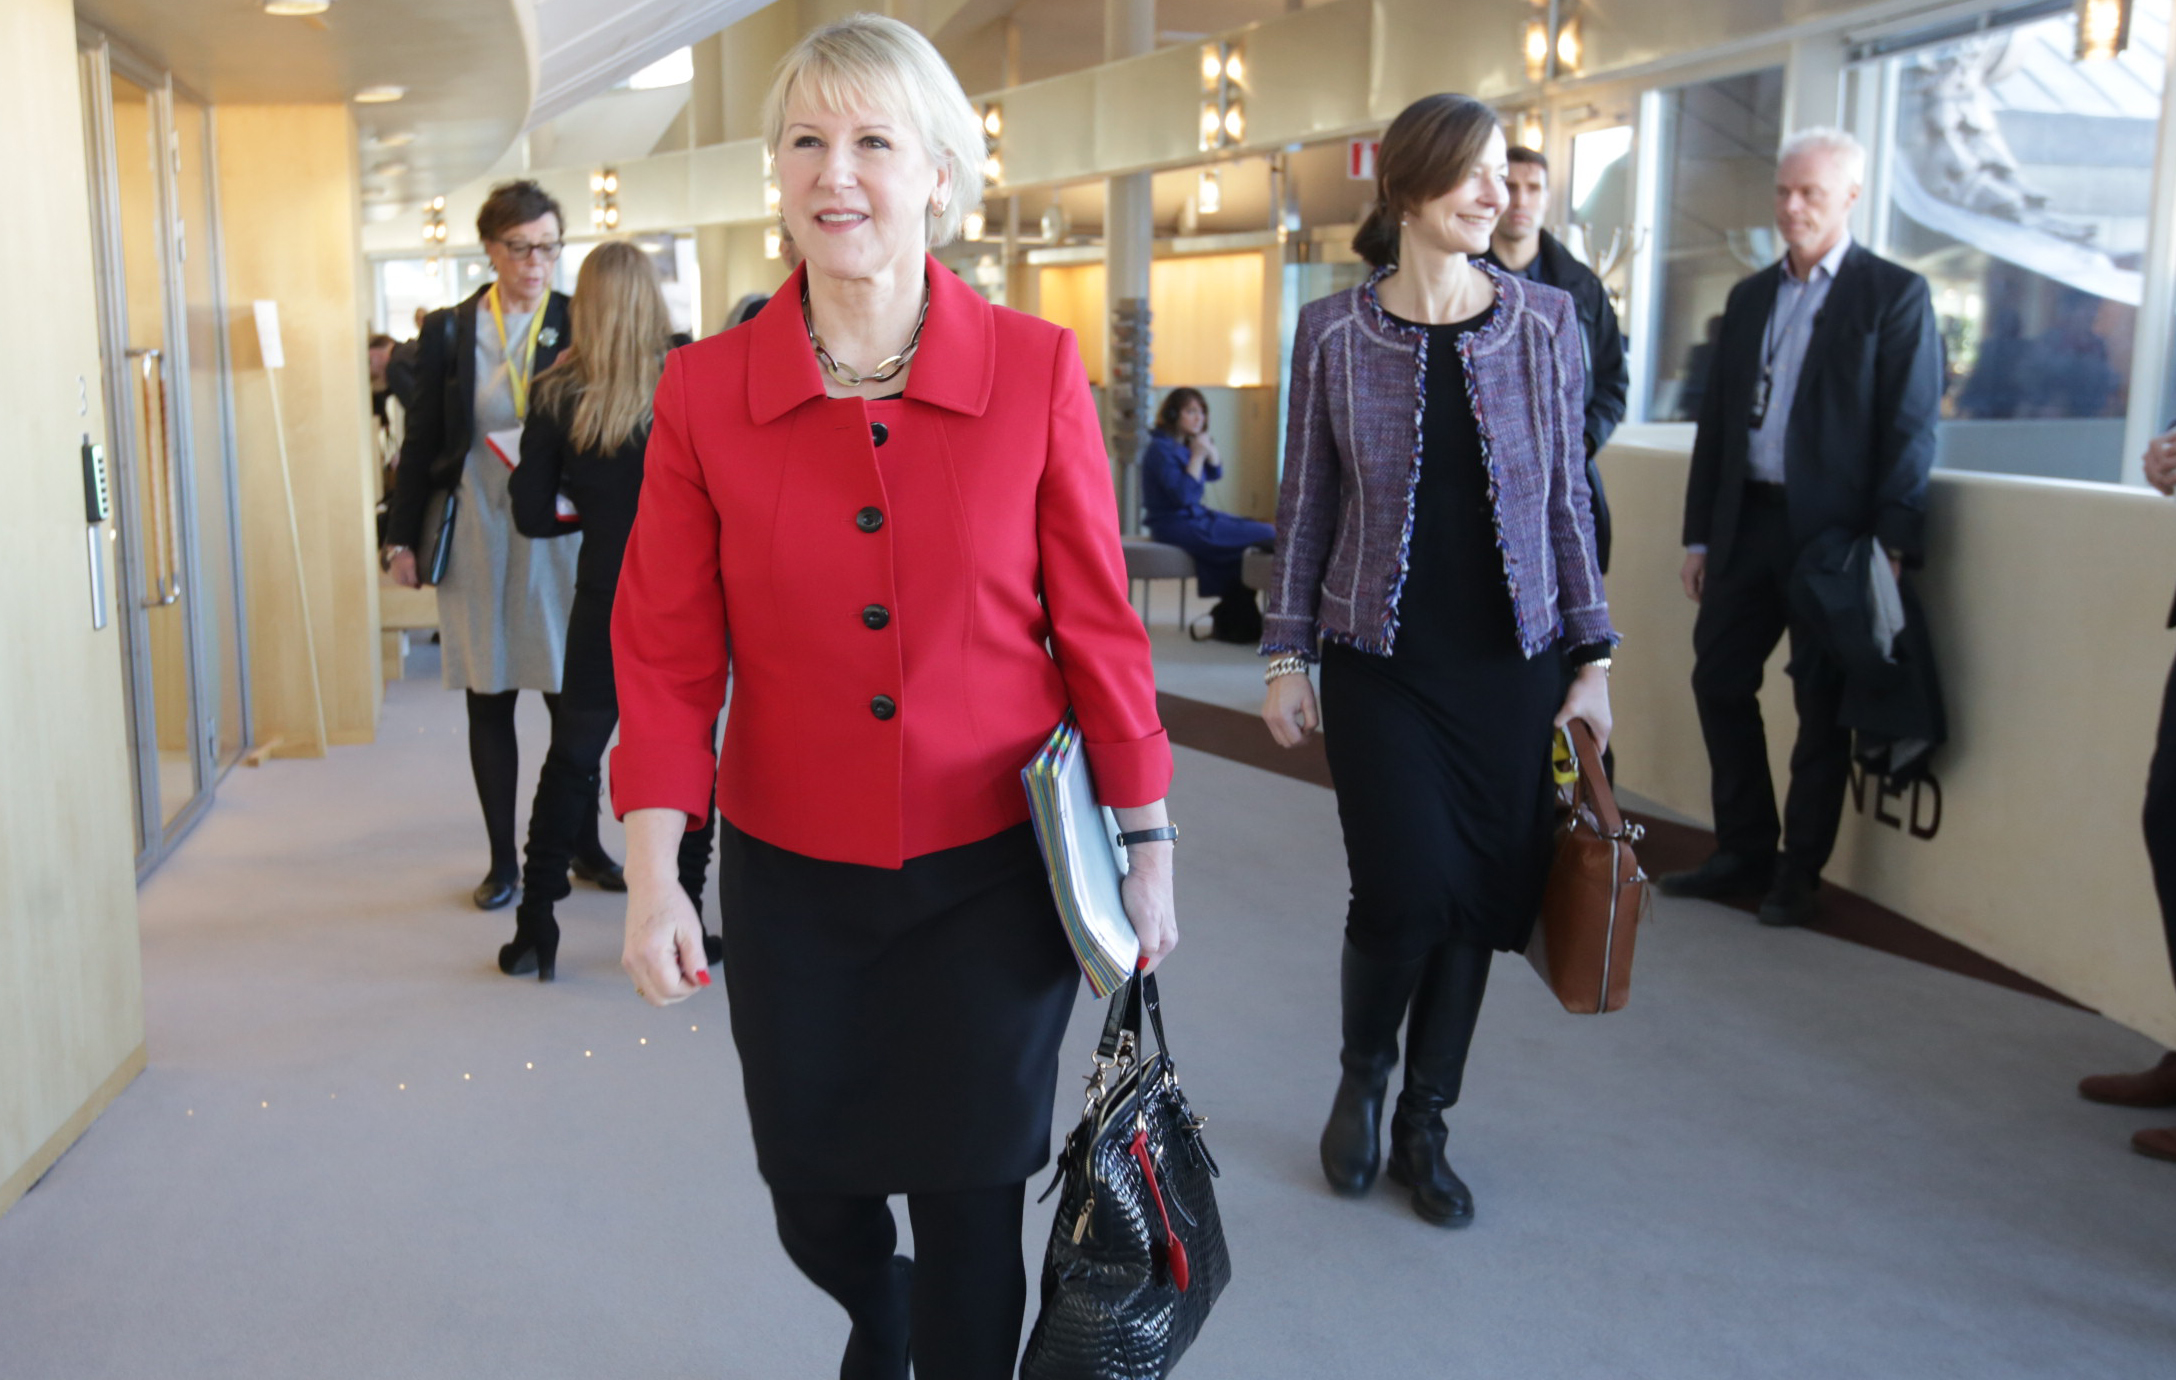 Minister for Foreign Affairs Margot Wallström on her way to present the Statement of Foreign Policy.